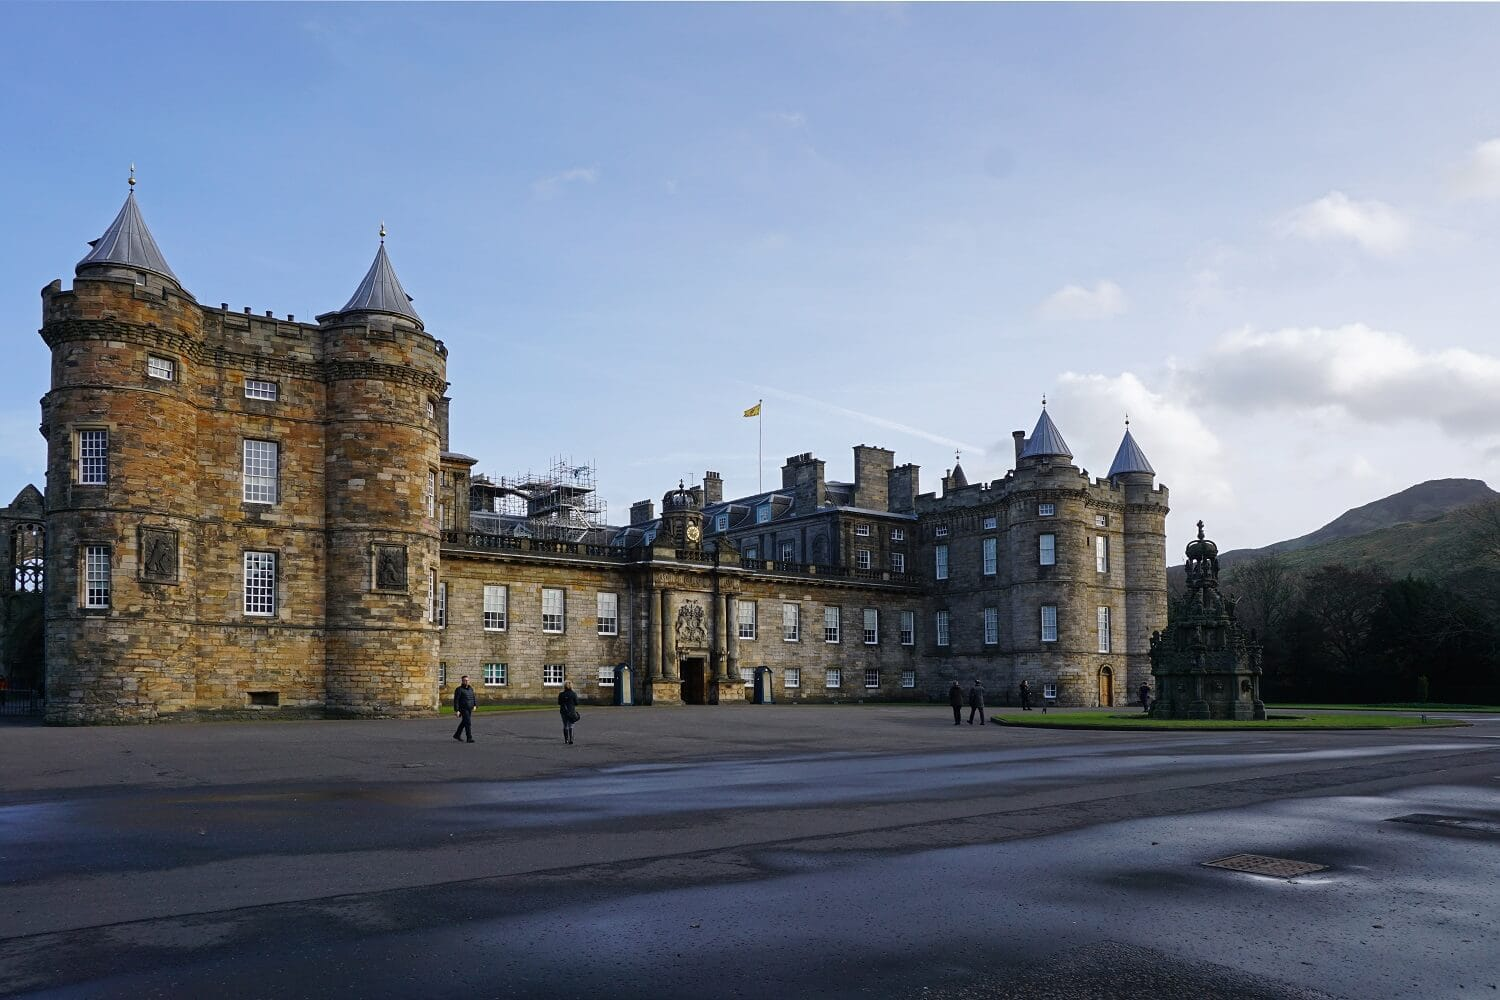 Another perspective of Holyrood Palace. -